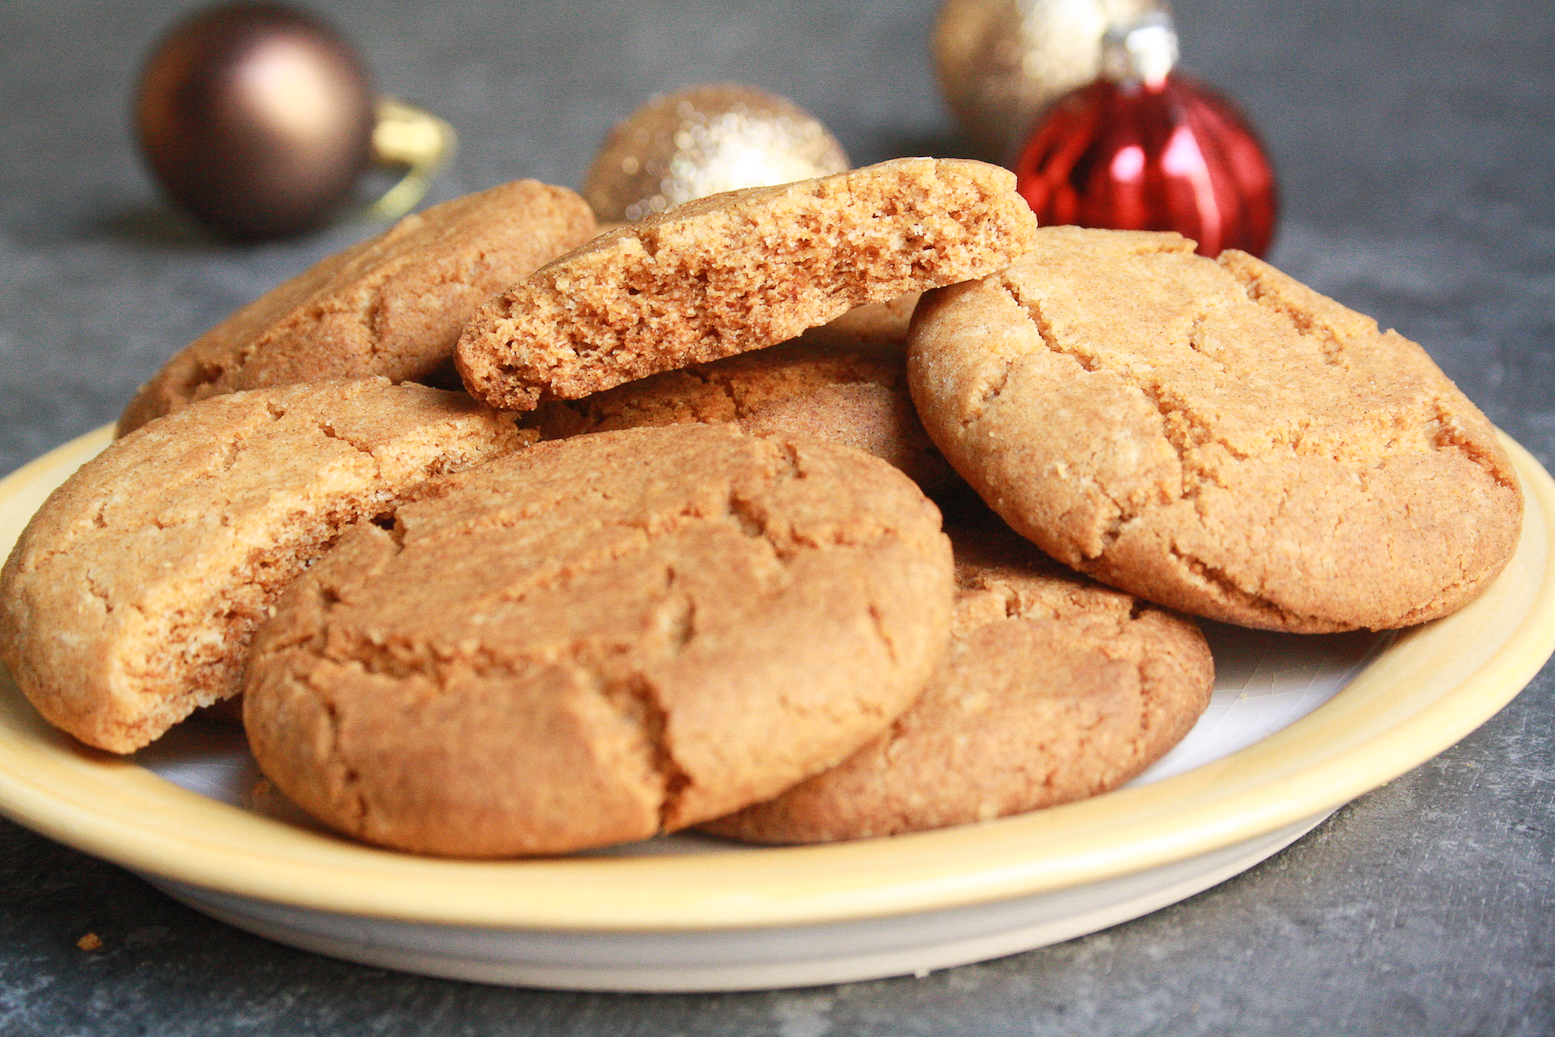 Perfectly sweet and spicy ginger biscuits waiting to be dunked into a mug of hot tea!